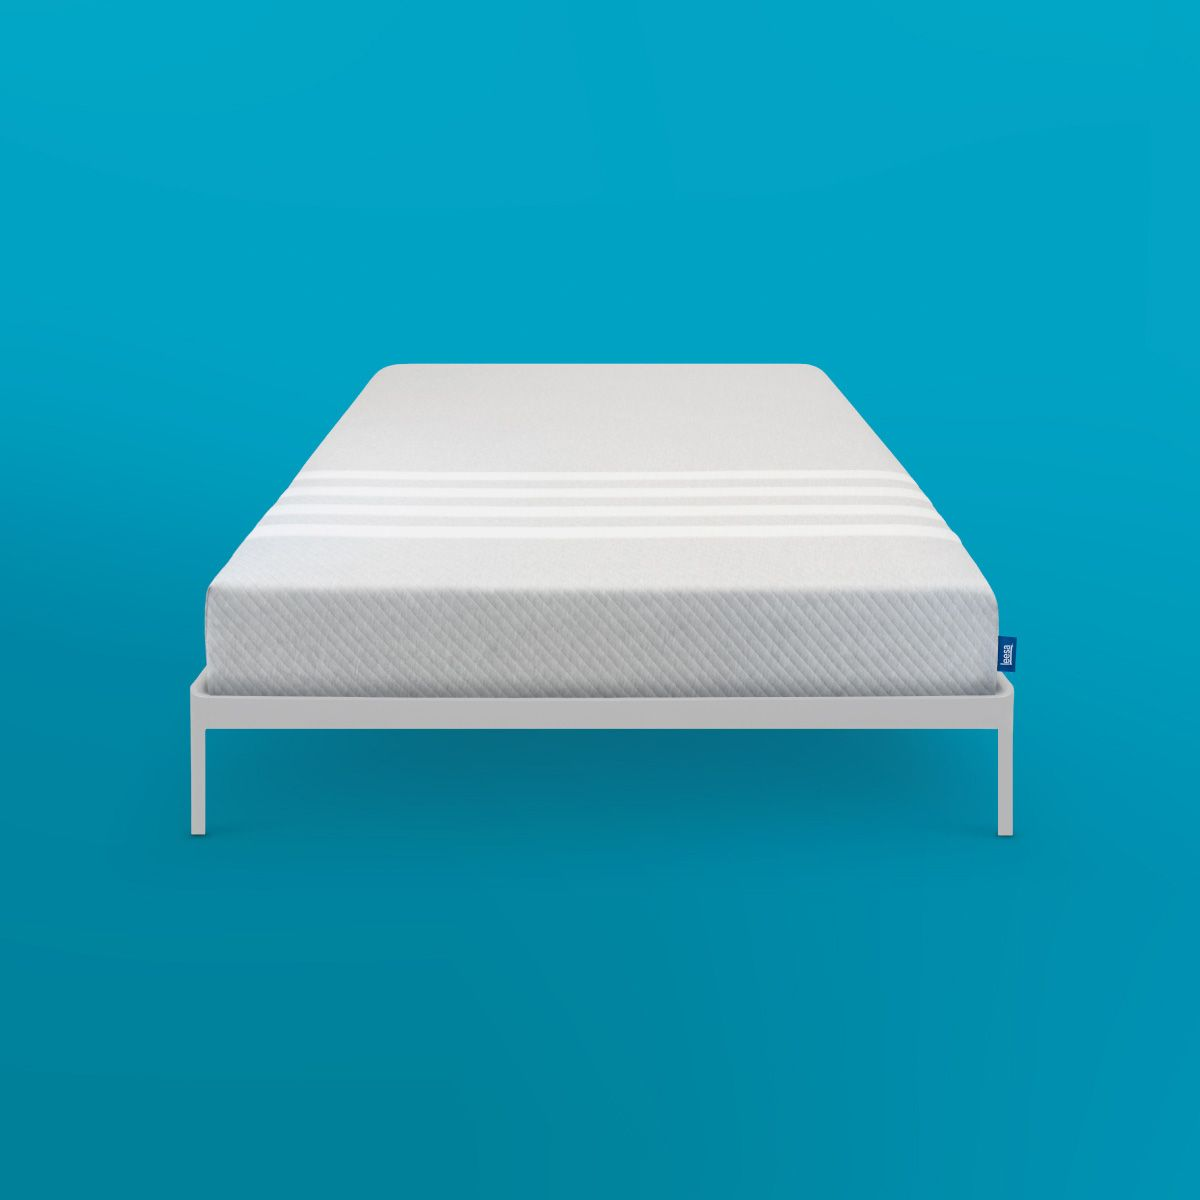 Strong Sturdy With Beautiful Clean Lines To Perfectly Match Your Leesa Or Sapira Mattress Leesa Mattress Mattress Memory Foam Mattress